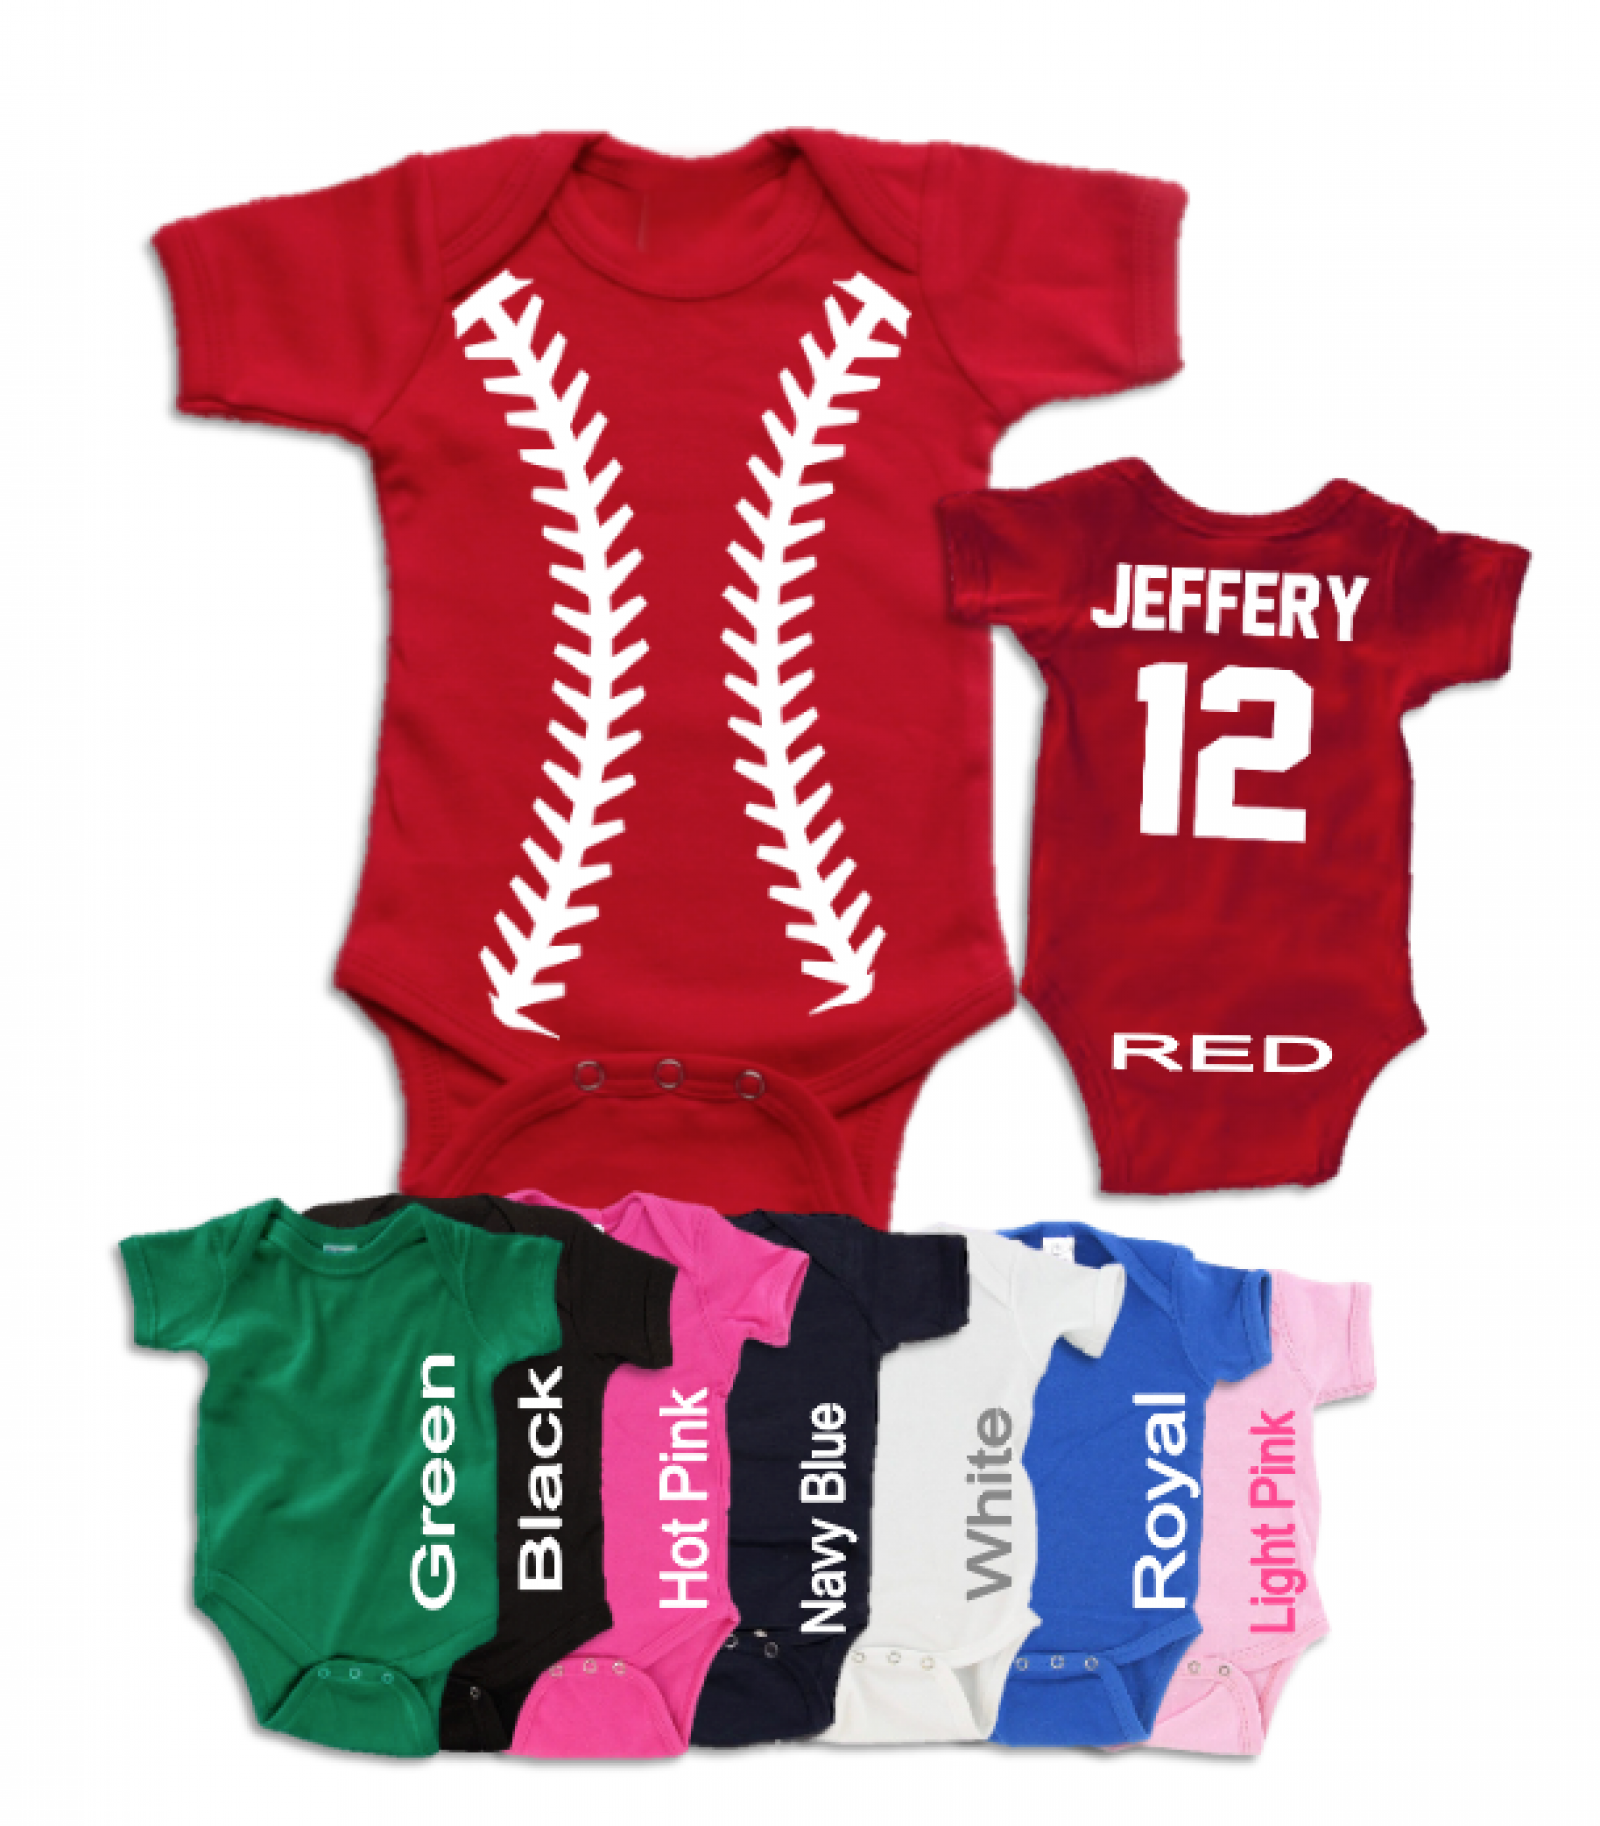 ce5e8954f5044 Baseball Jersey Personalized with Name and Number